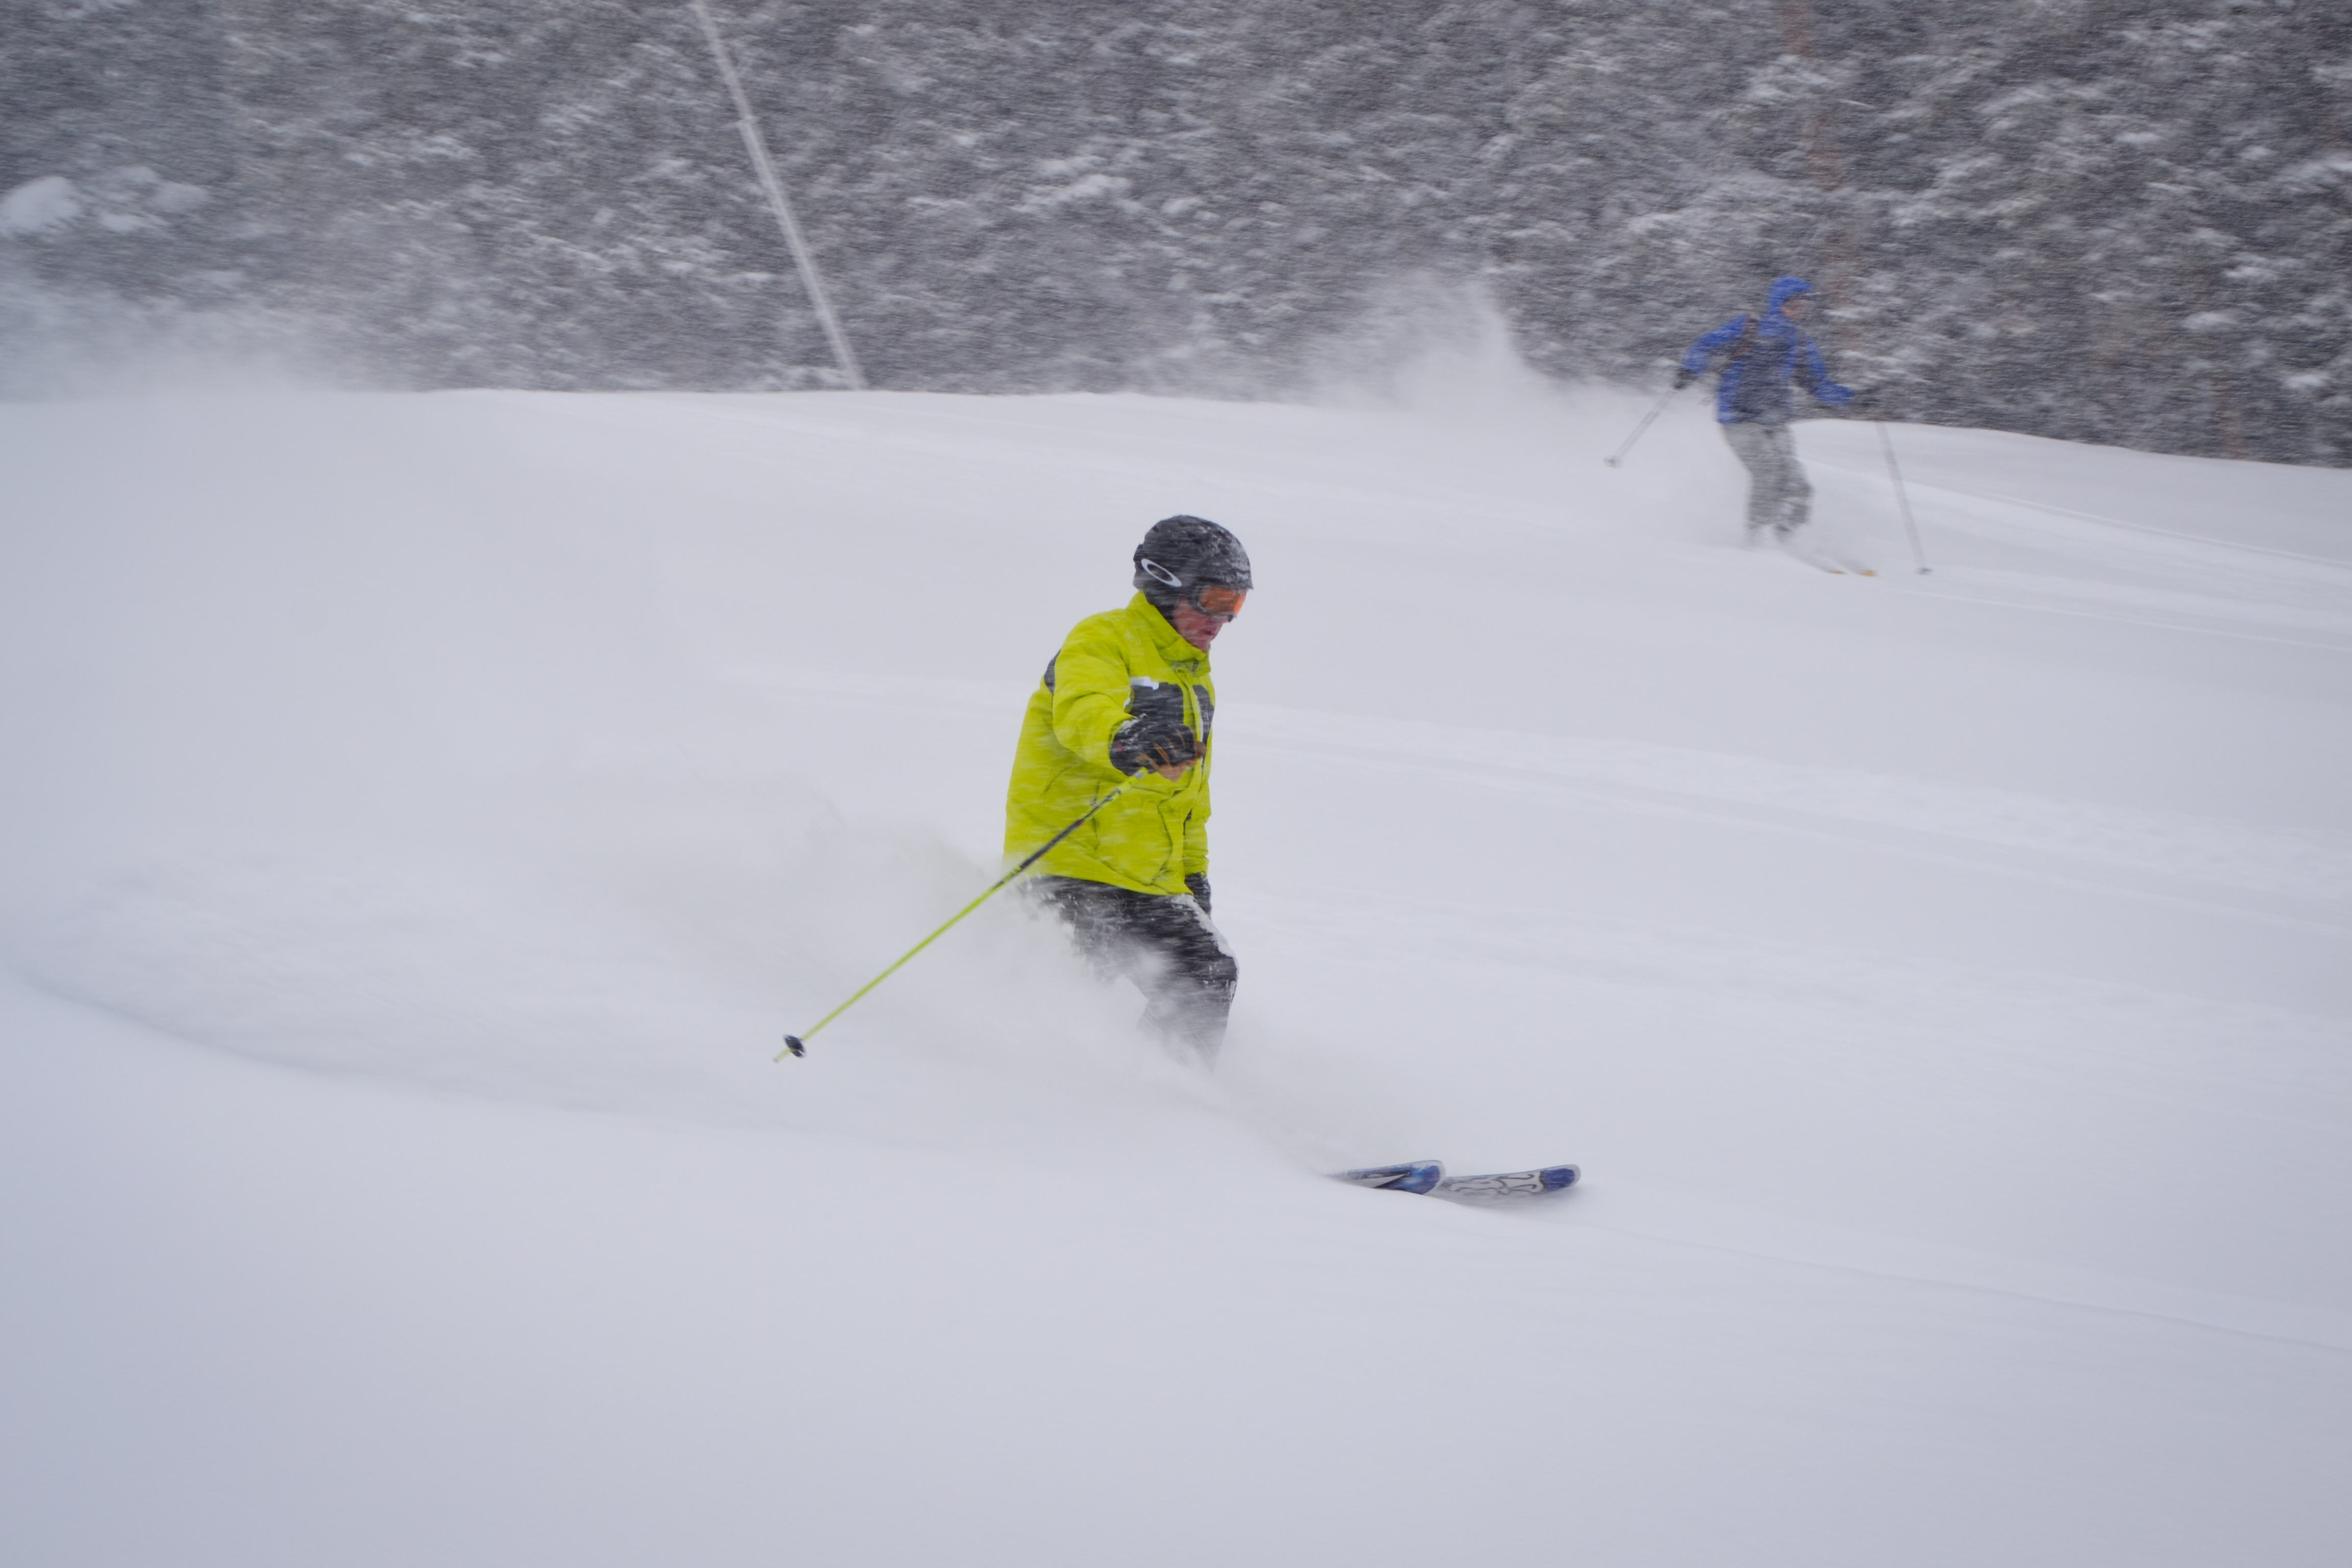 Making turns in soft snow